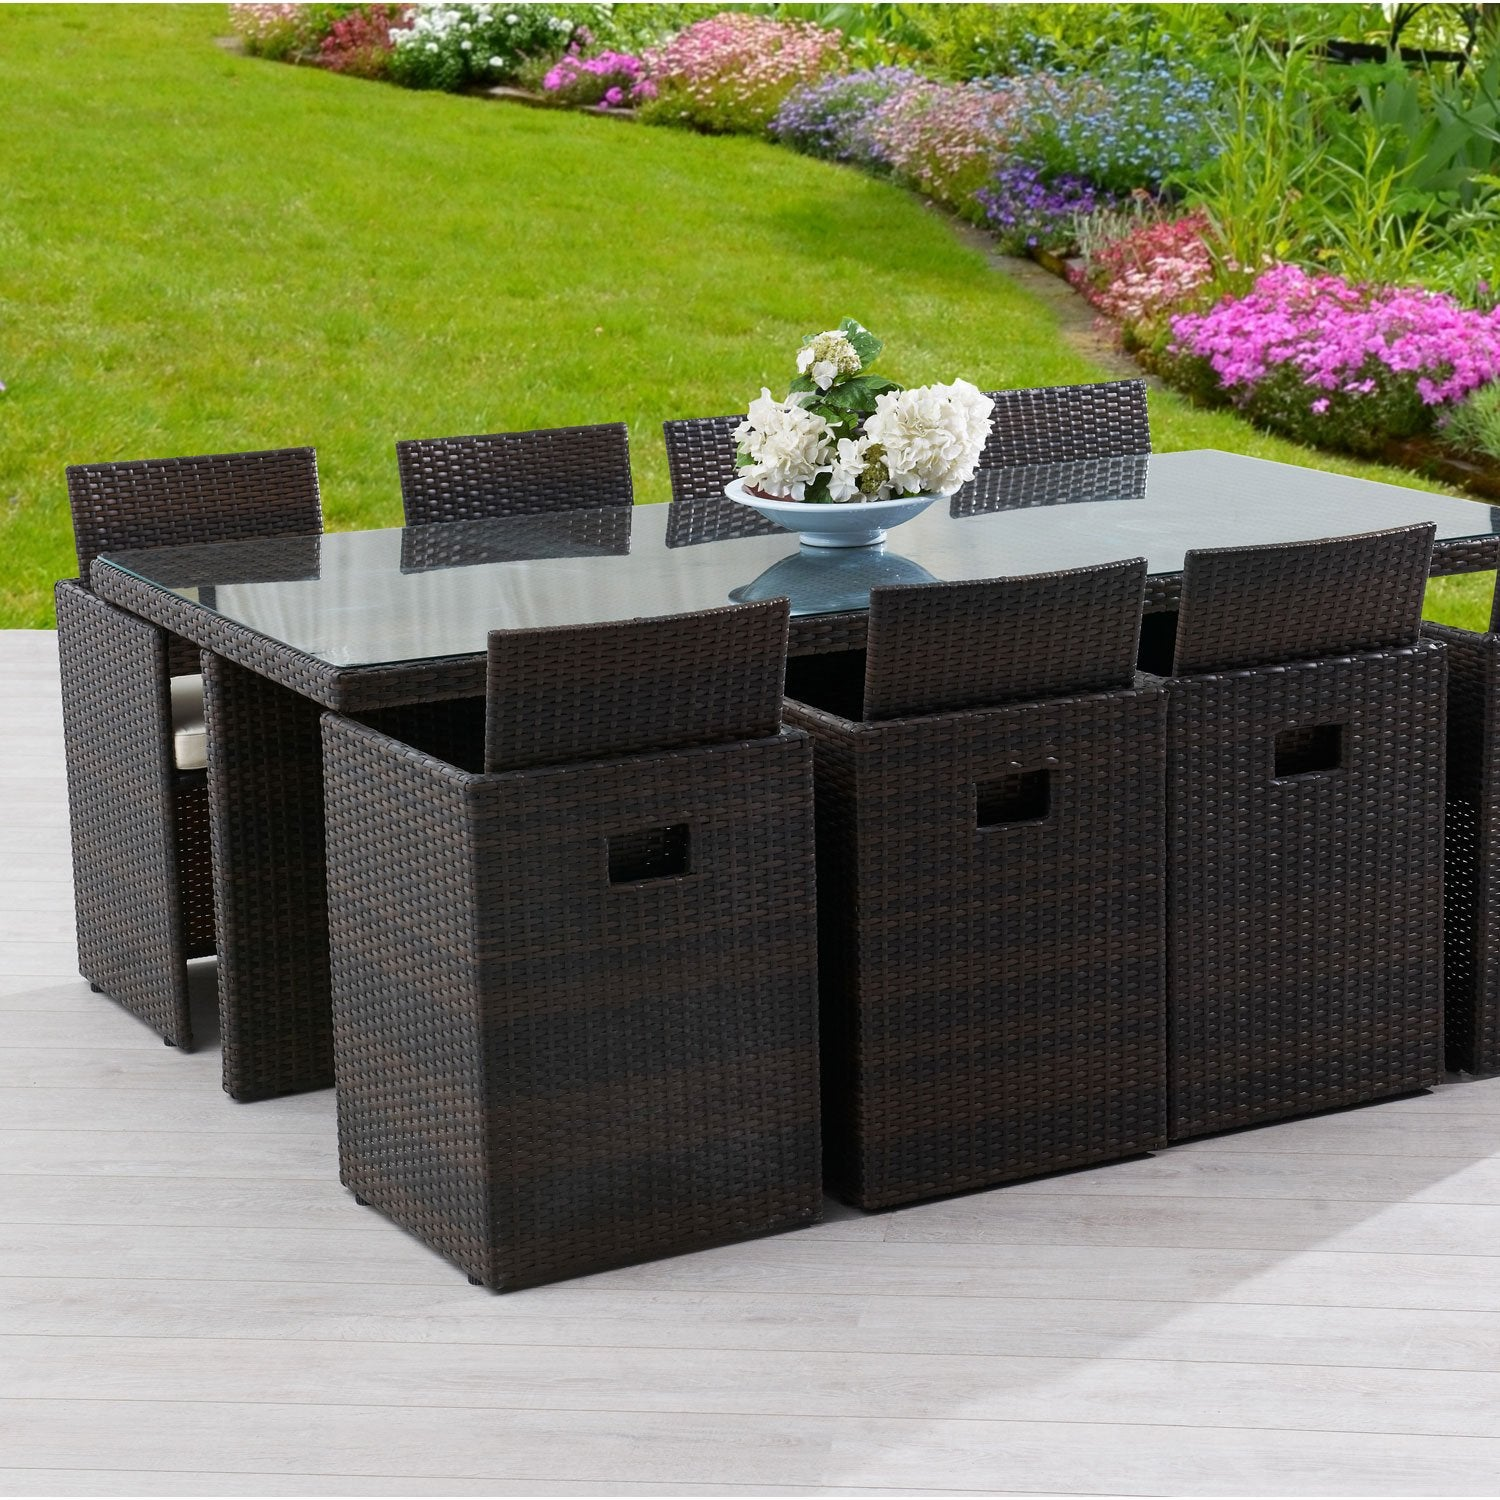 Salon de jardin encastrable r sine tress e marron 1 table for Table de jardin exterieur pas cher